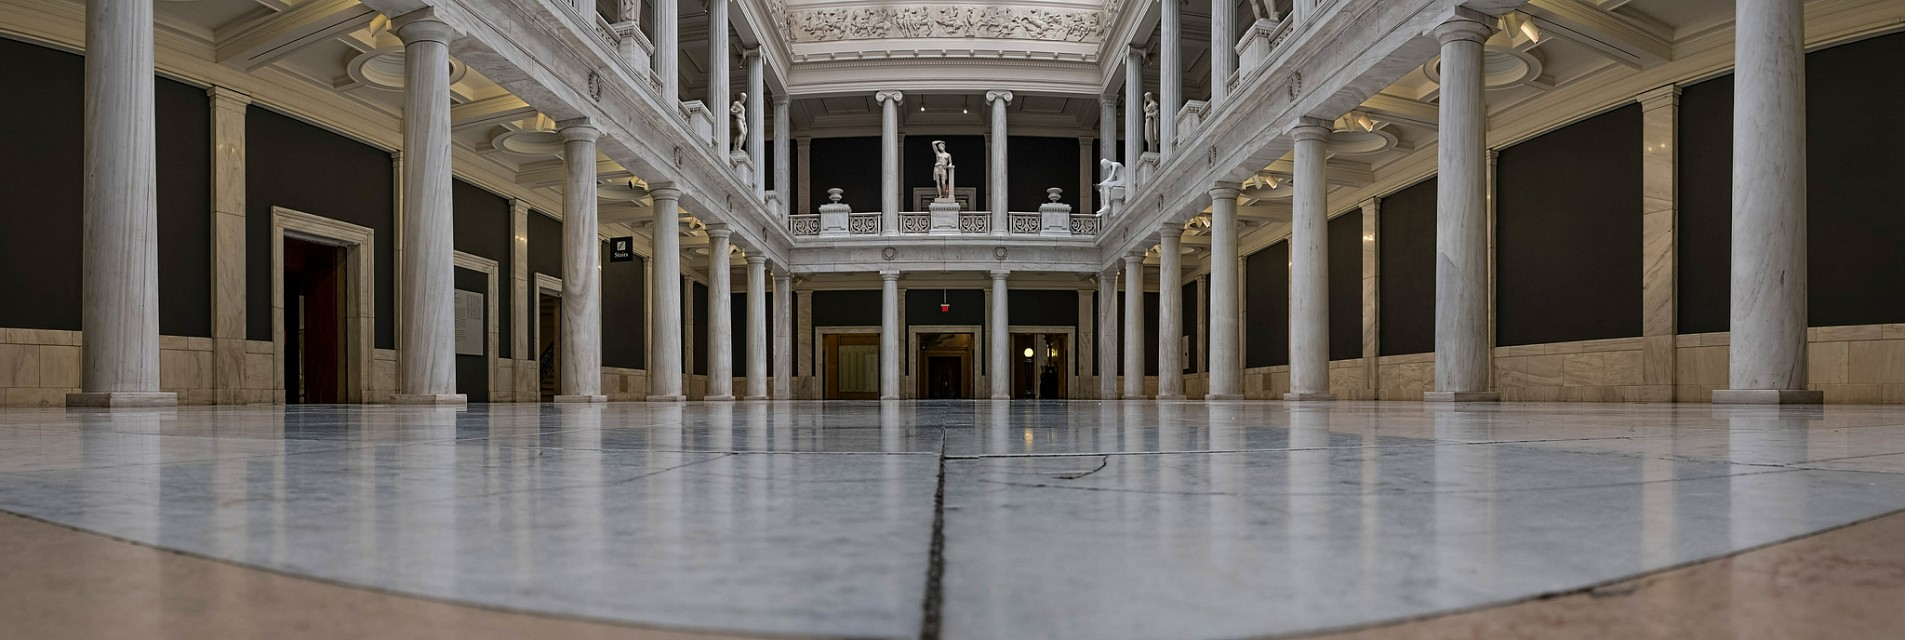 a report on visiting the egyptian hall at the carnegie museum Visit the post for more the office of the arts at hunter college supports student engagement with the arts both on and off @ carnegie hall save save save save.